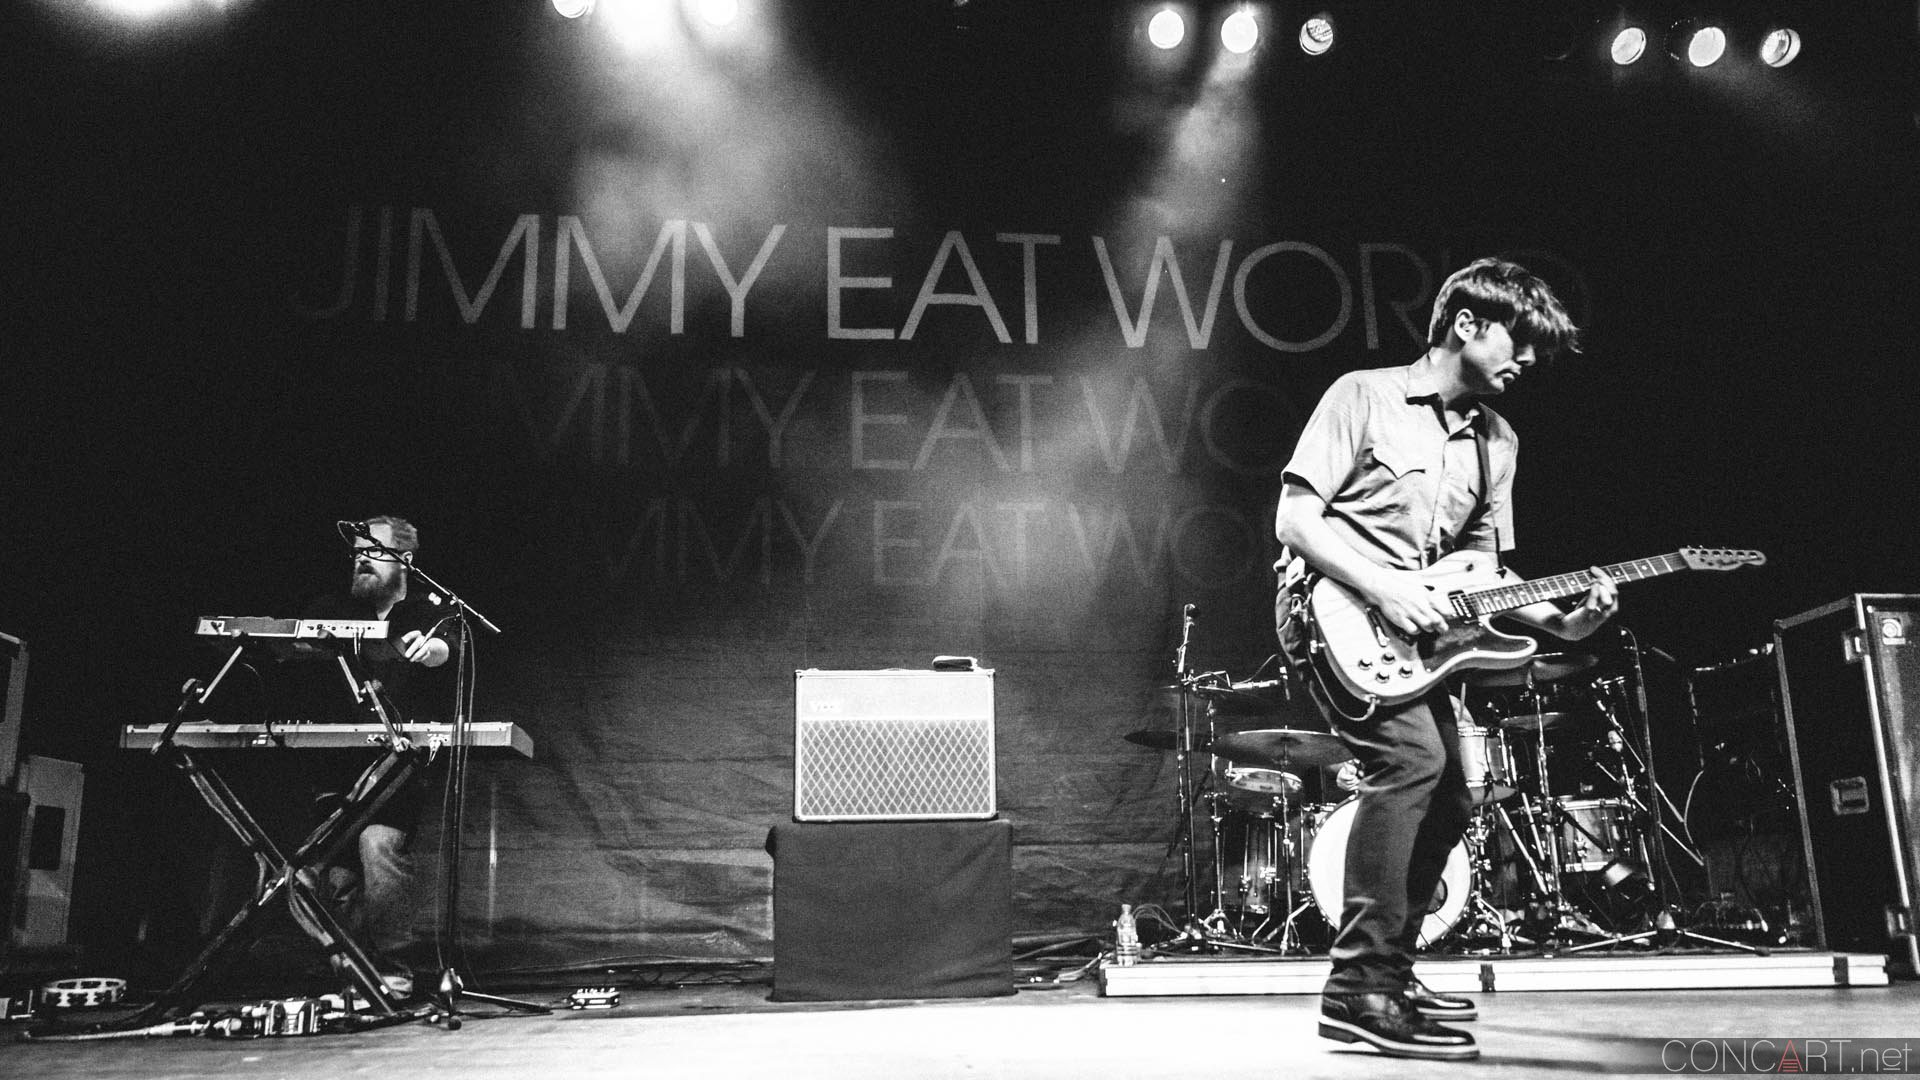 Jimmy Eat World Wallpaper